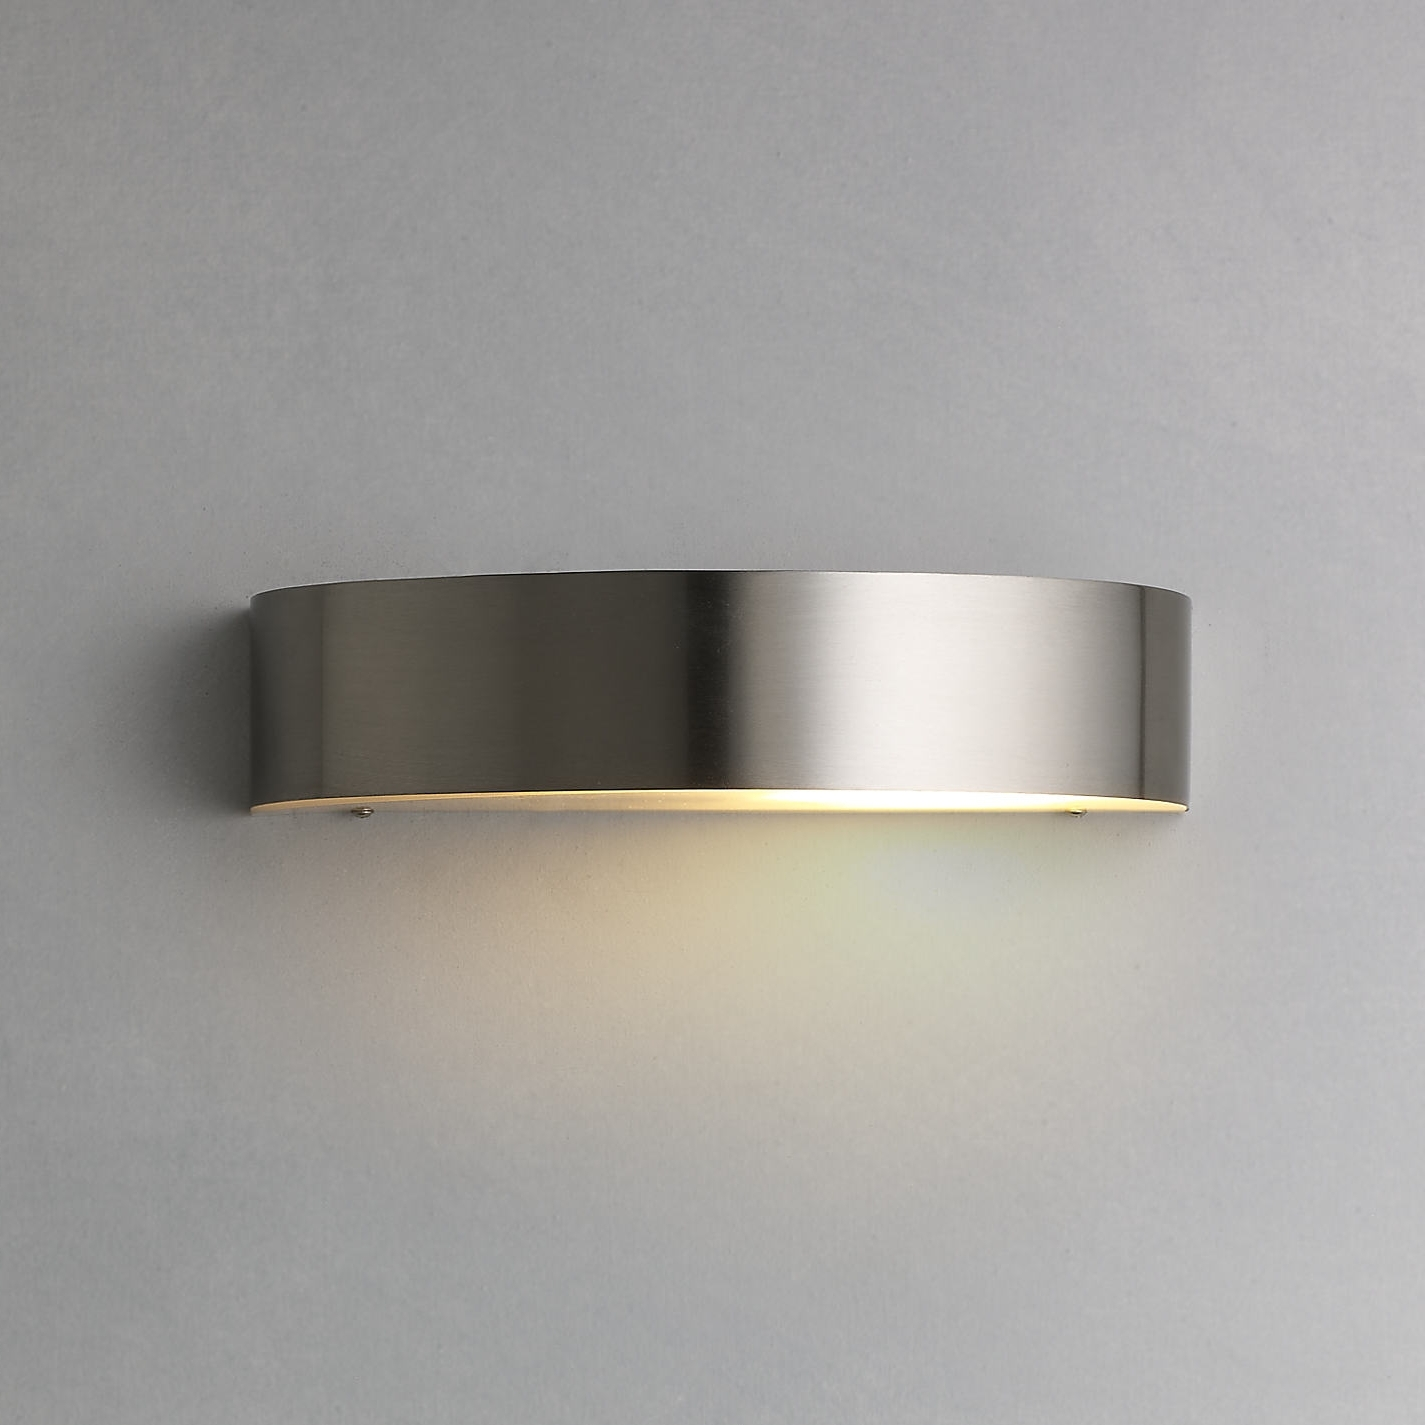 Best And Newest Outdoor Wall Lighting At B&q In Wall Lights B&q (View 4 of 20)